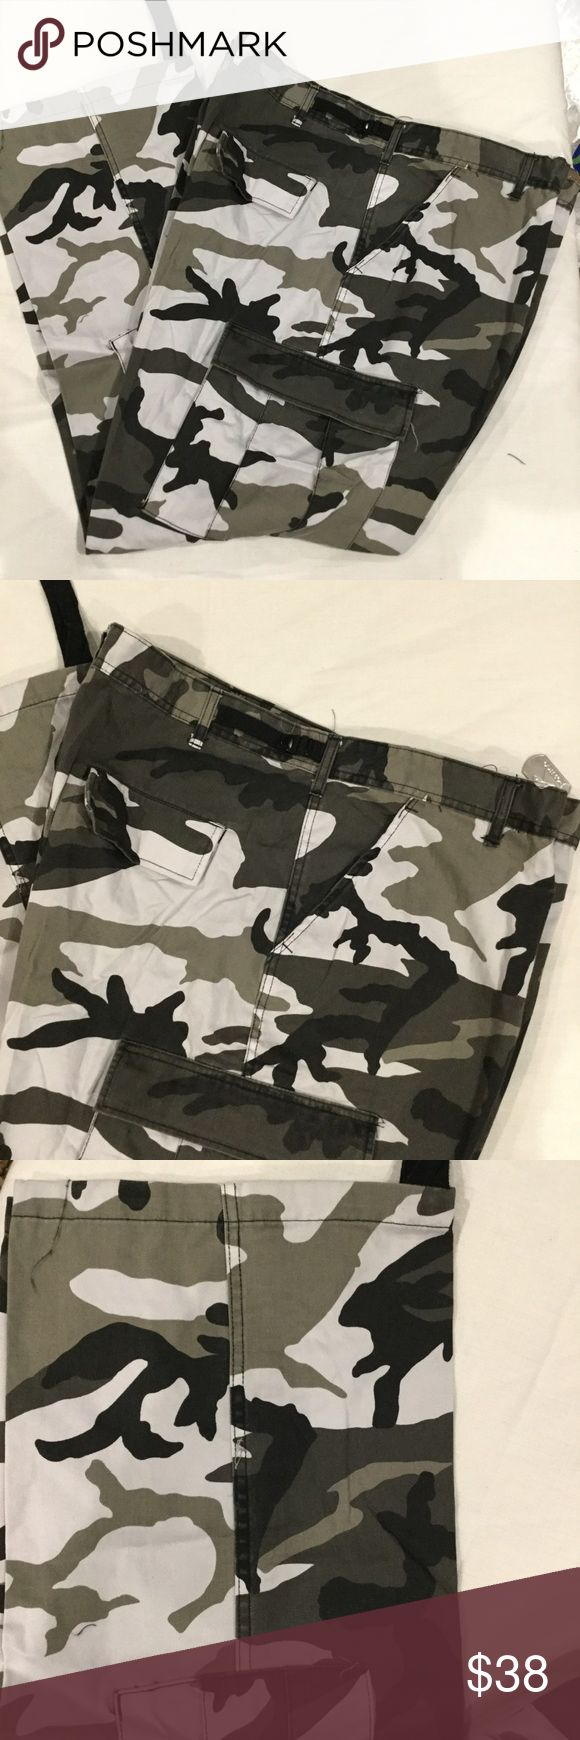 """NWT Rothco Tactical City Camouflage Cargo Pants Rothco Military Division pants are 50% polyester, 50% cotton.The cargo pants are size XXL Regular and measure 43"""" to 47""""around the waist and have a 29 1/2 to 32 1/2 in inseam.  The tags reads waist 43 to 47 inseam 29 ½"""" to 32 ½"""".  They have two slash pockets on the front, two button down patch pockets on the back and two button down patch cargo pockets. There are bottom ties at the cuff. Rothco Pants Cargo"""